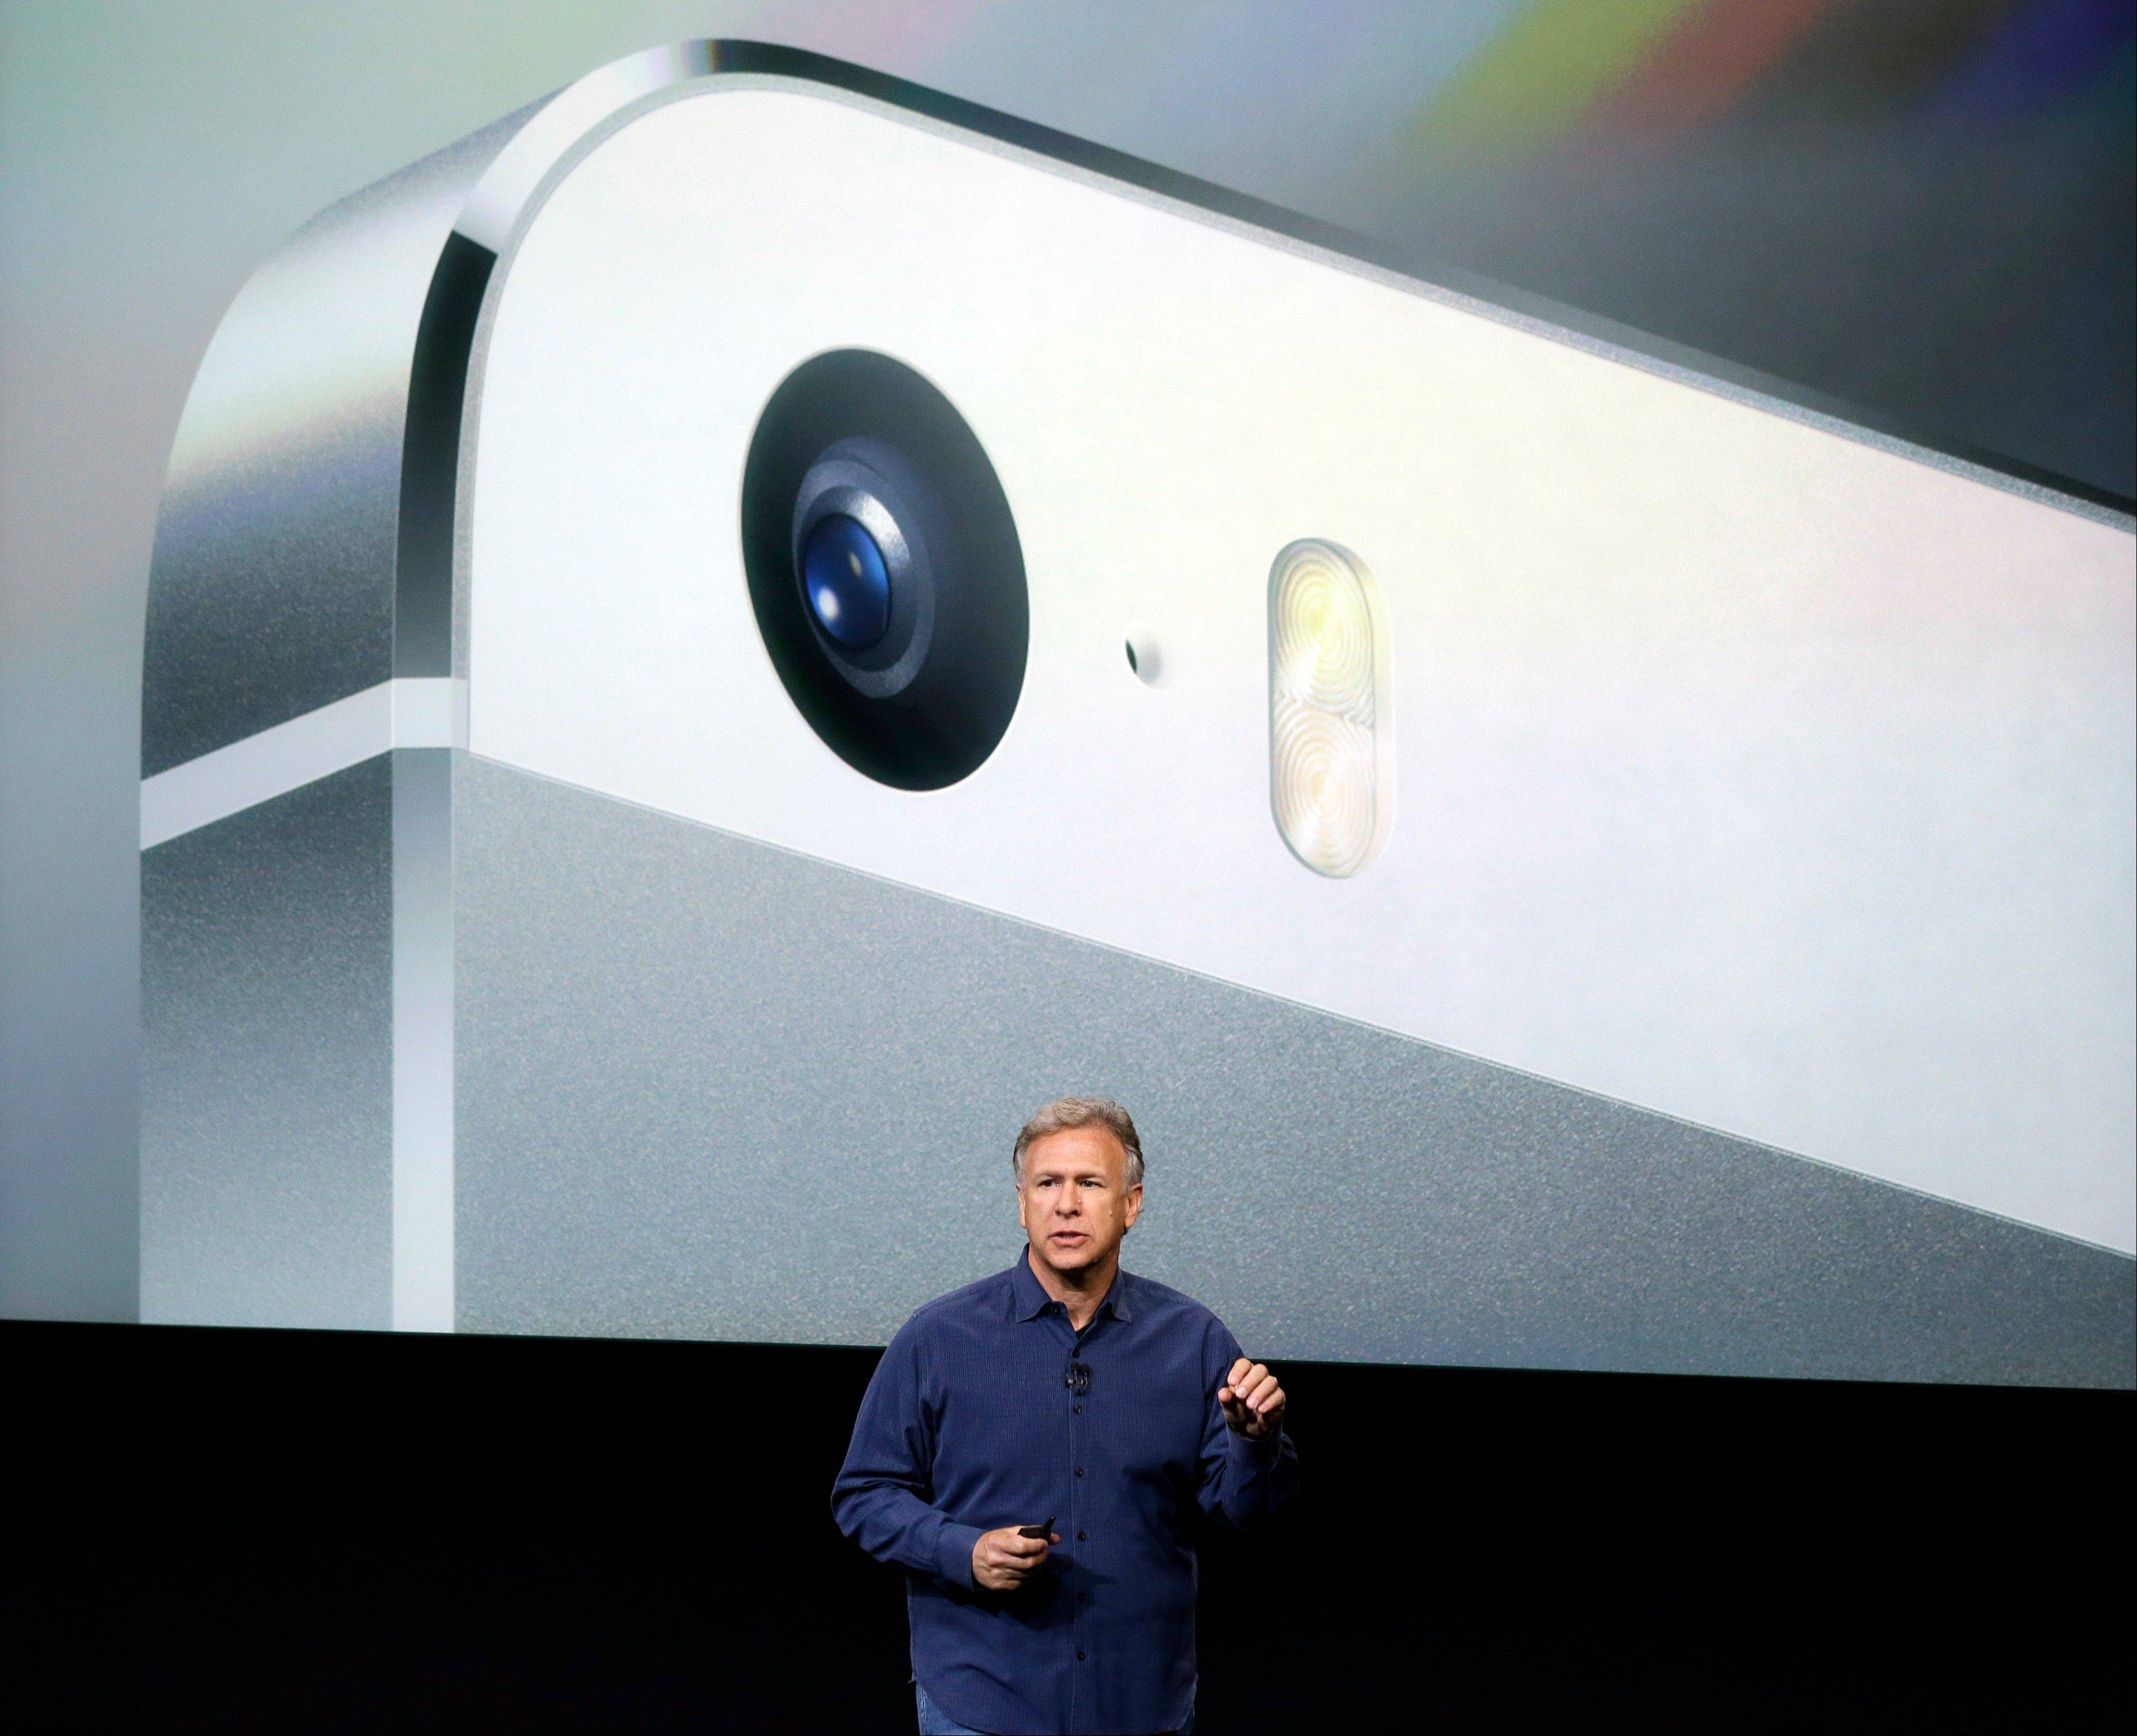 Phil Schiller, Apple's senior vice president of worldwide product marketing, speaks on stage about the camera quality during the introduction of the new iPhone 5s in Cupertino, Calif., Tuesday, Sept. 10, 2013.